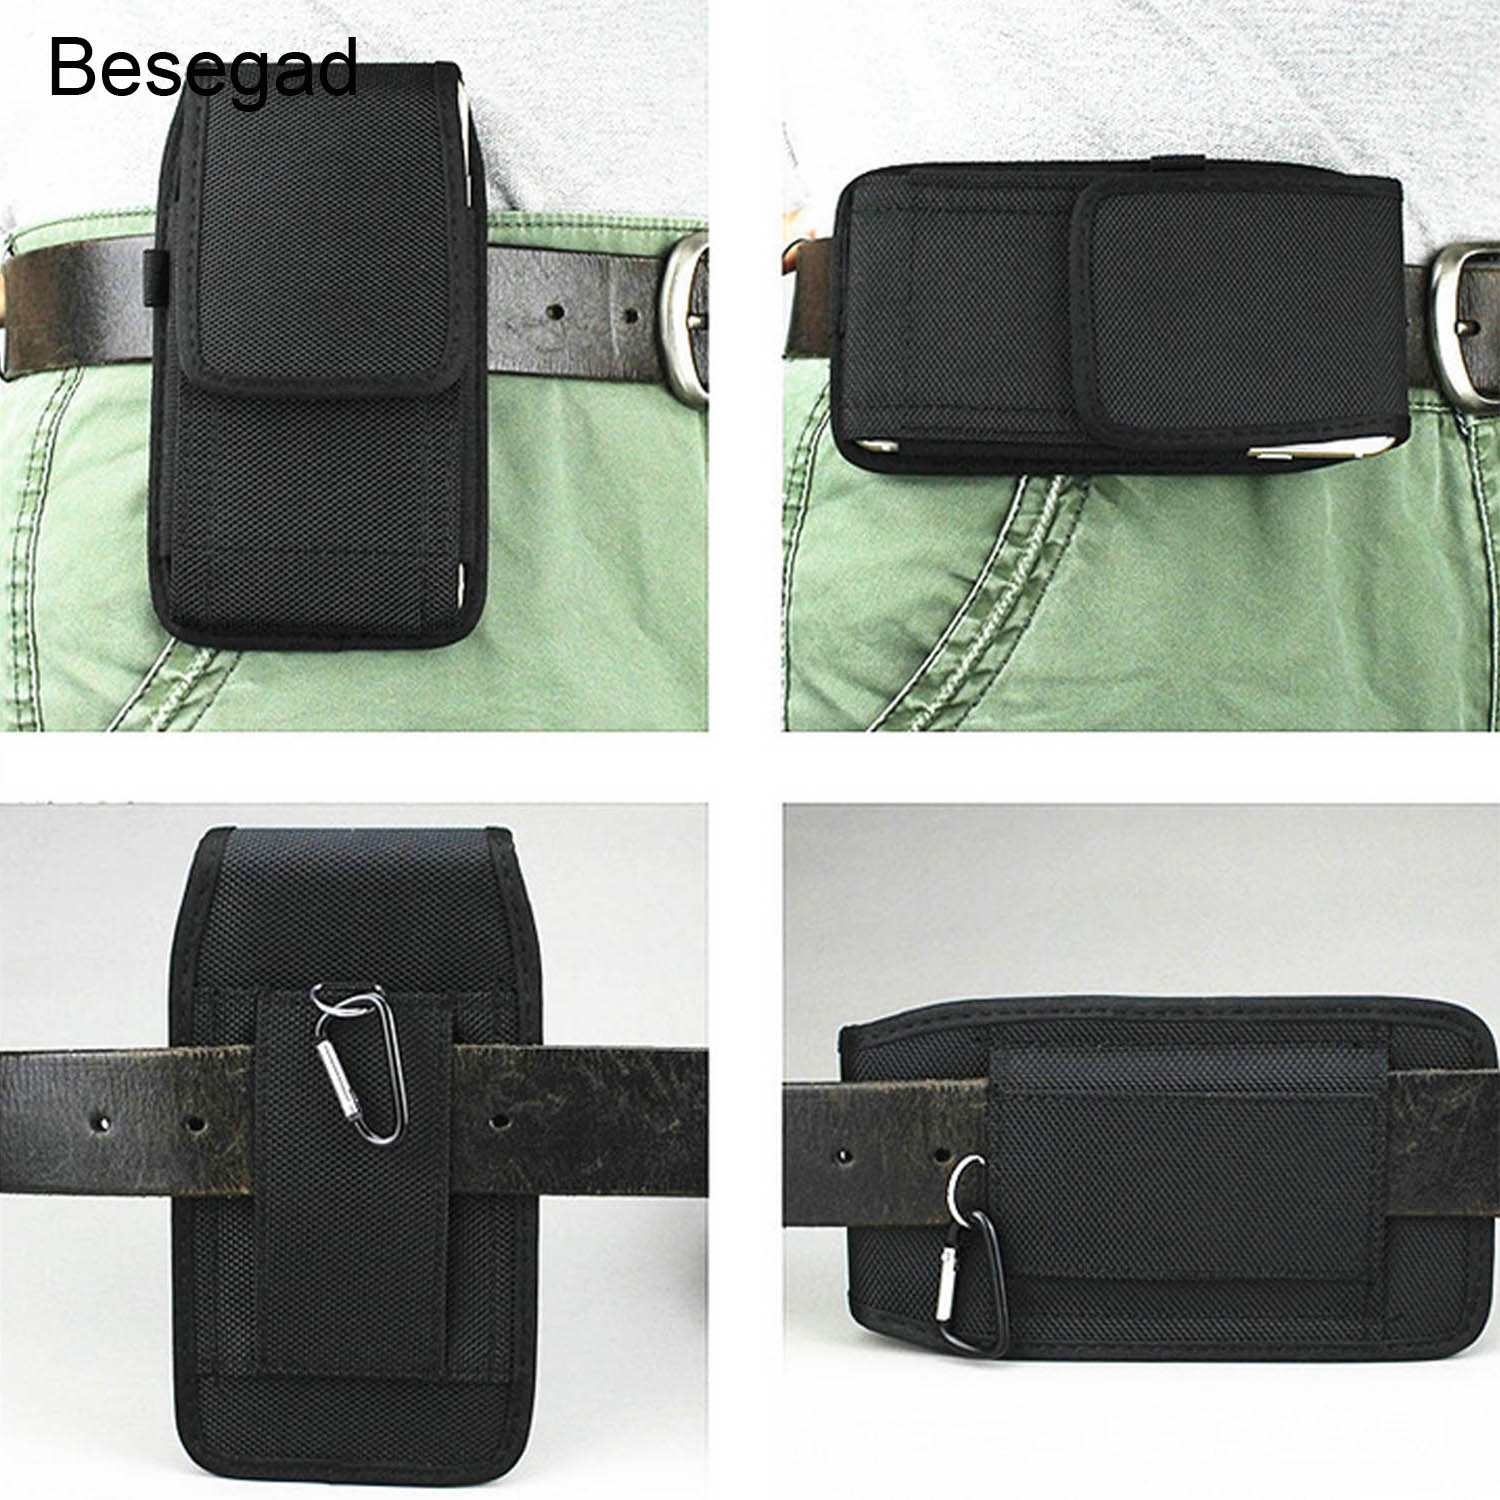 Besegad Outdoor Sport Mobile Phone Holster Belt Waist Bag Case Pocket Gadget Pouch for iPhone 8 7 6 Plus Samsung Huawei Xiaomi